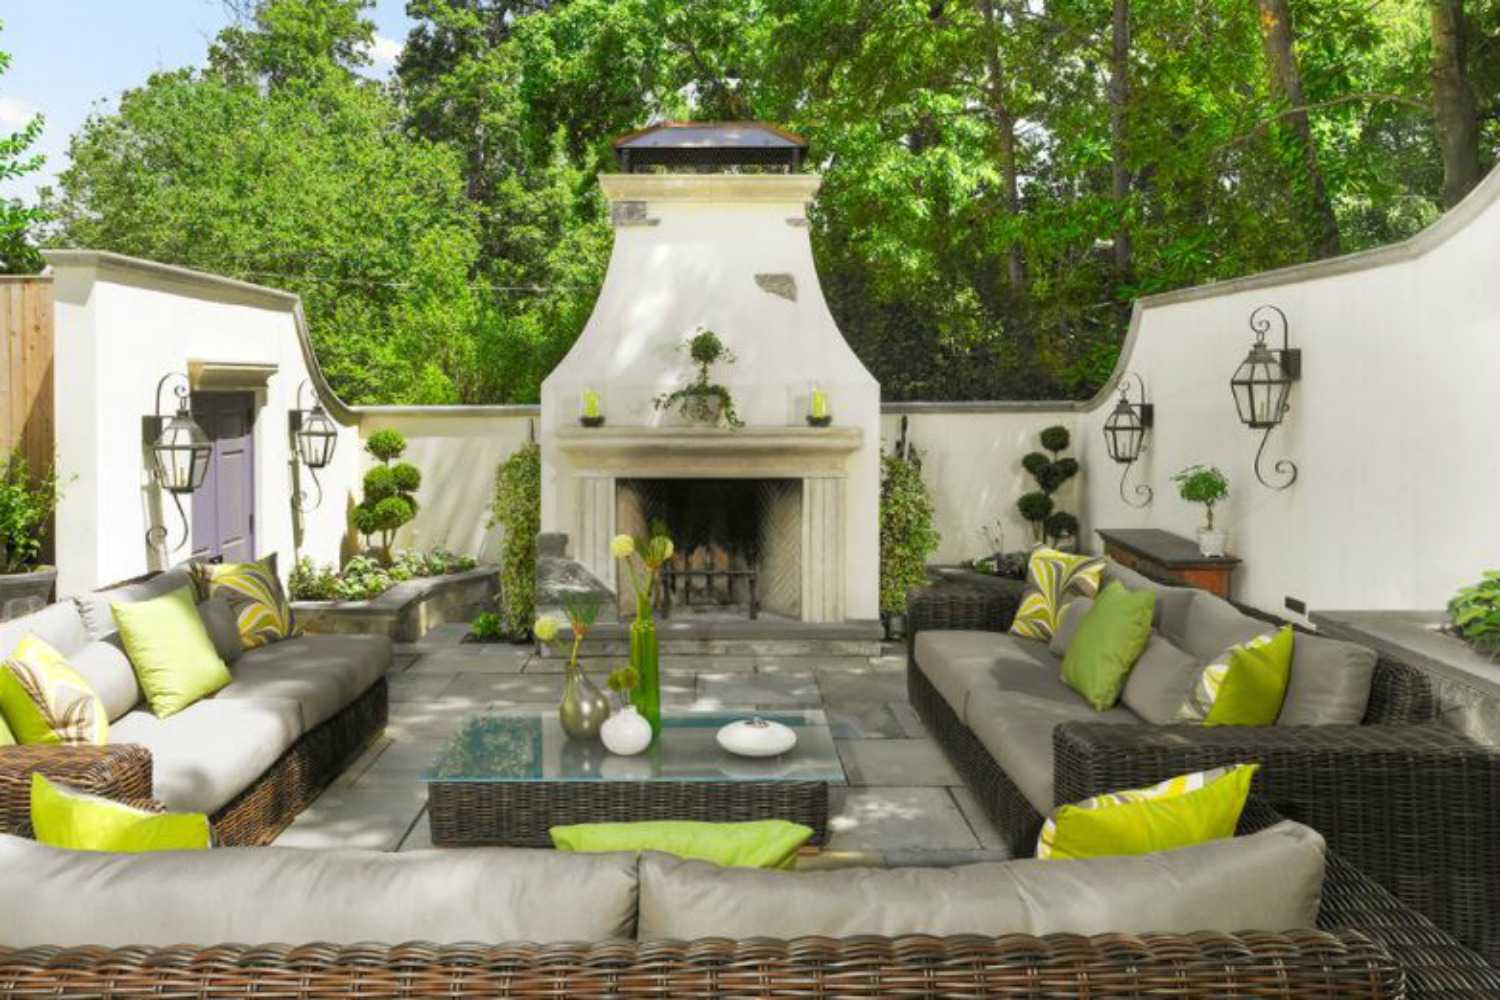 49 Outdoor Living Room Design Ideas